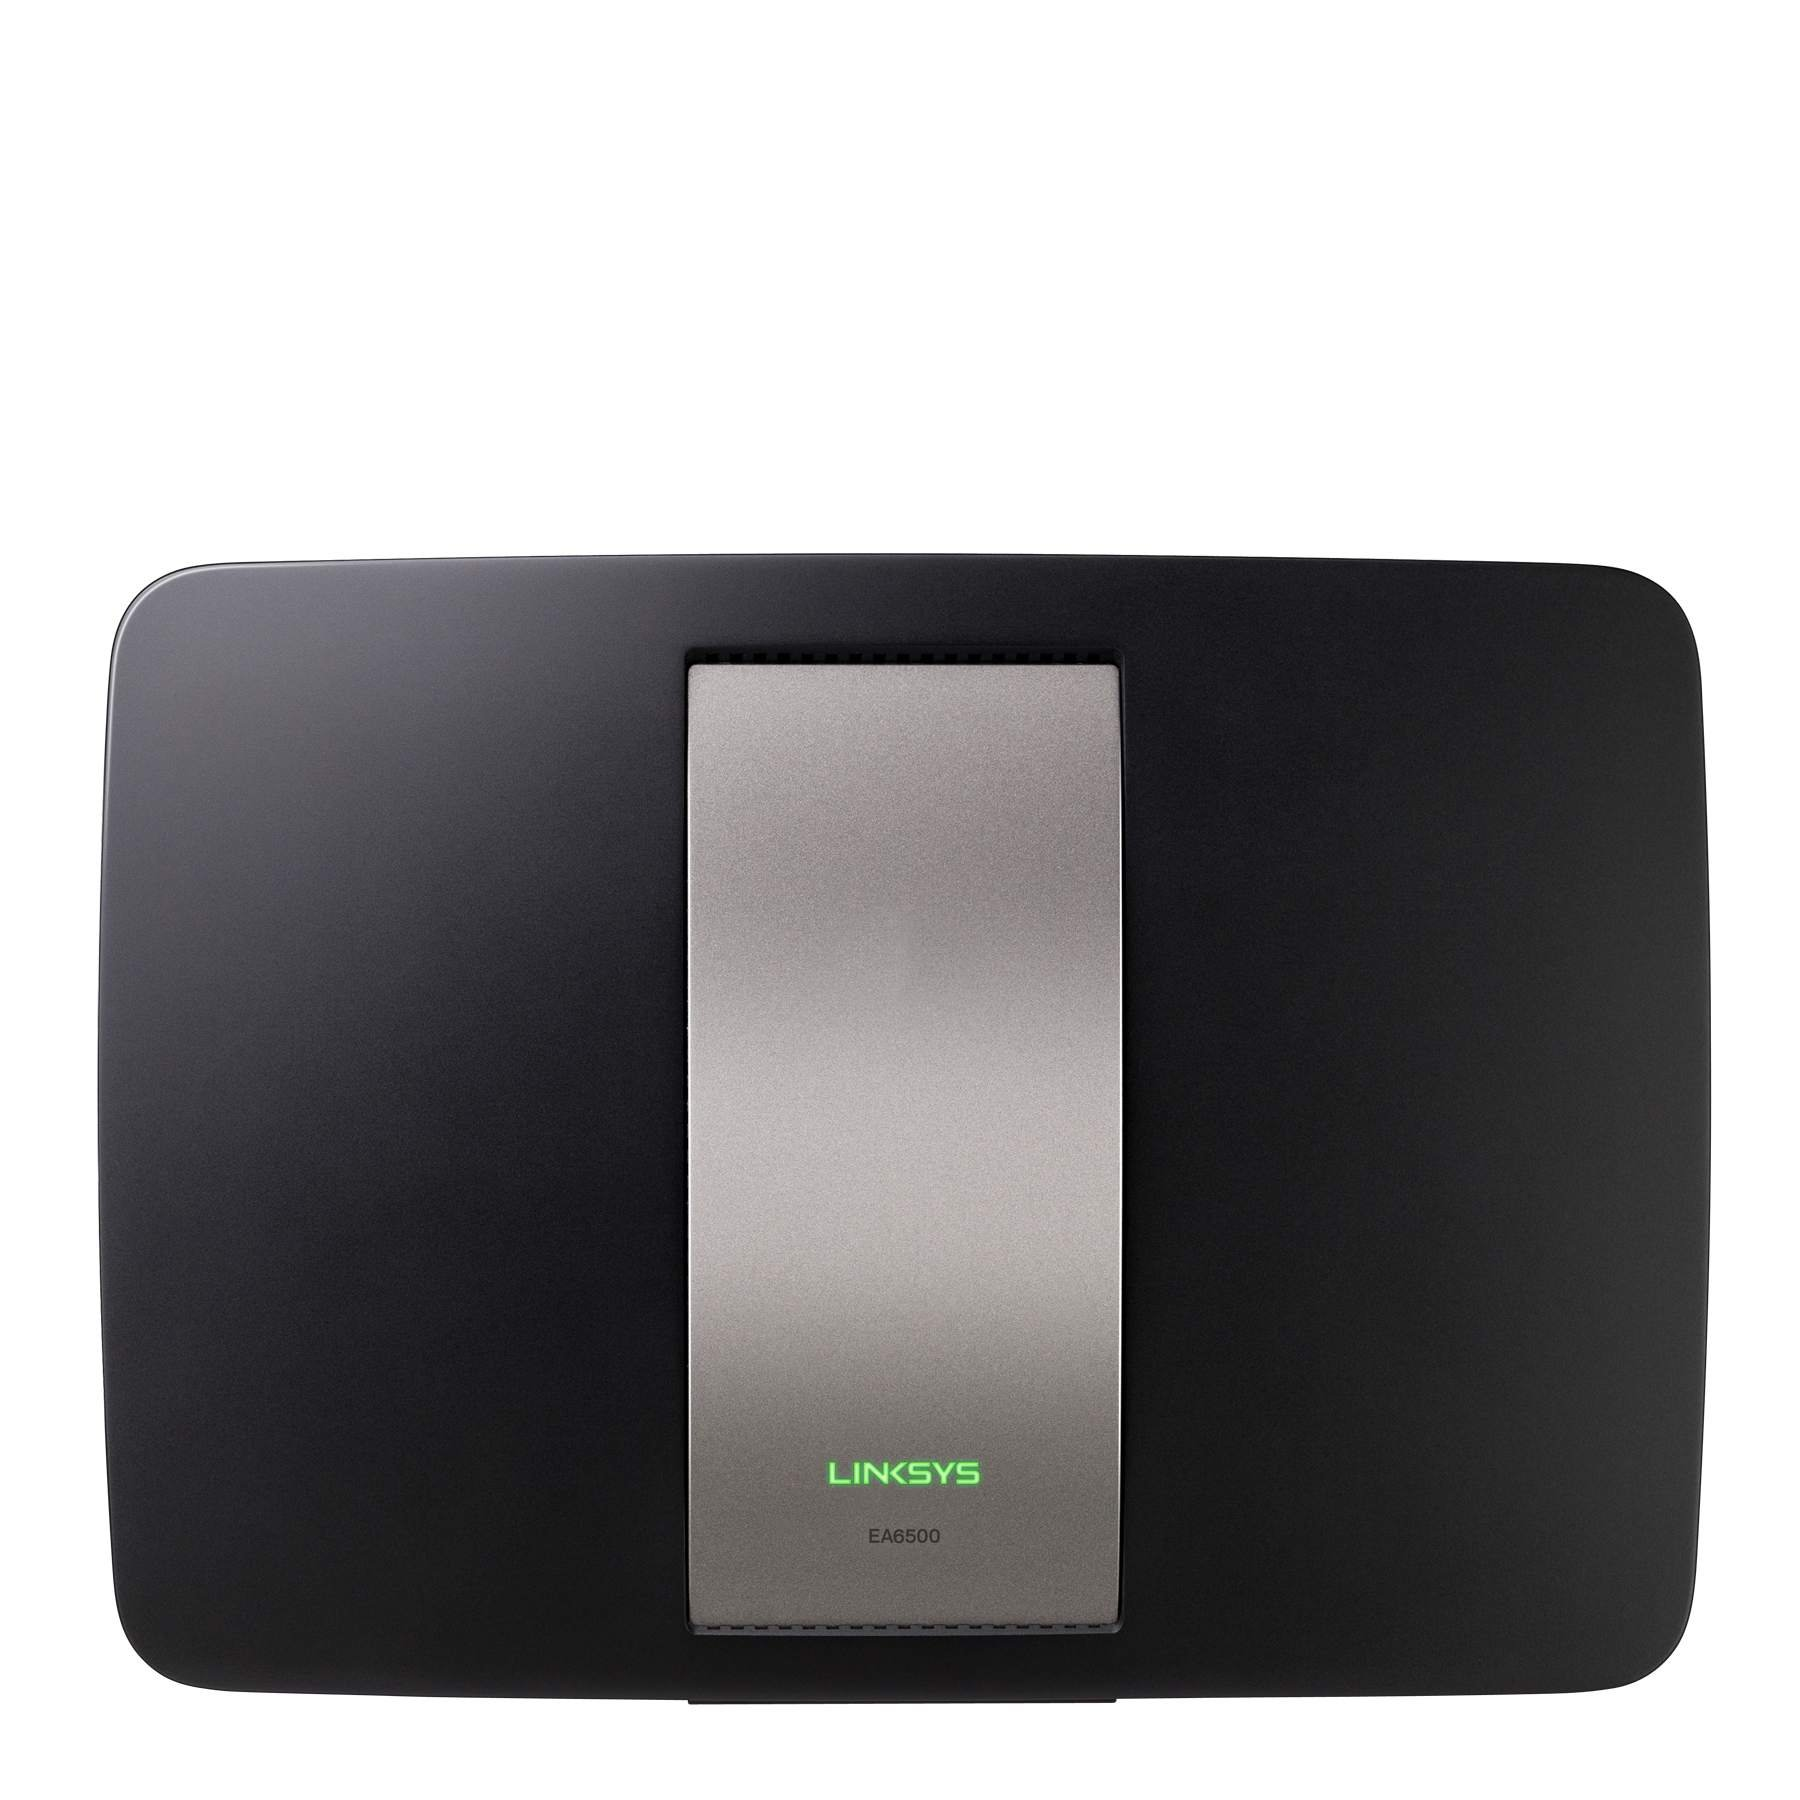 Linksys AC1750 Wi-Fi Wireless Dual-Band+ Router with Gigabit, Smart Wi-Fi App Enabled to Control Your Network from Anywhere (EA6500) by Linksys